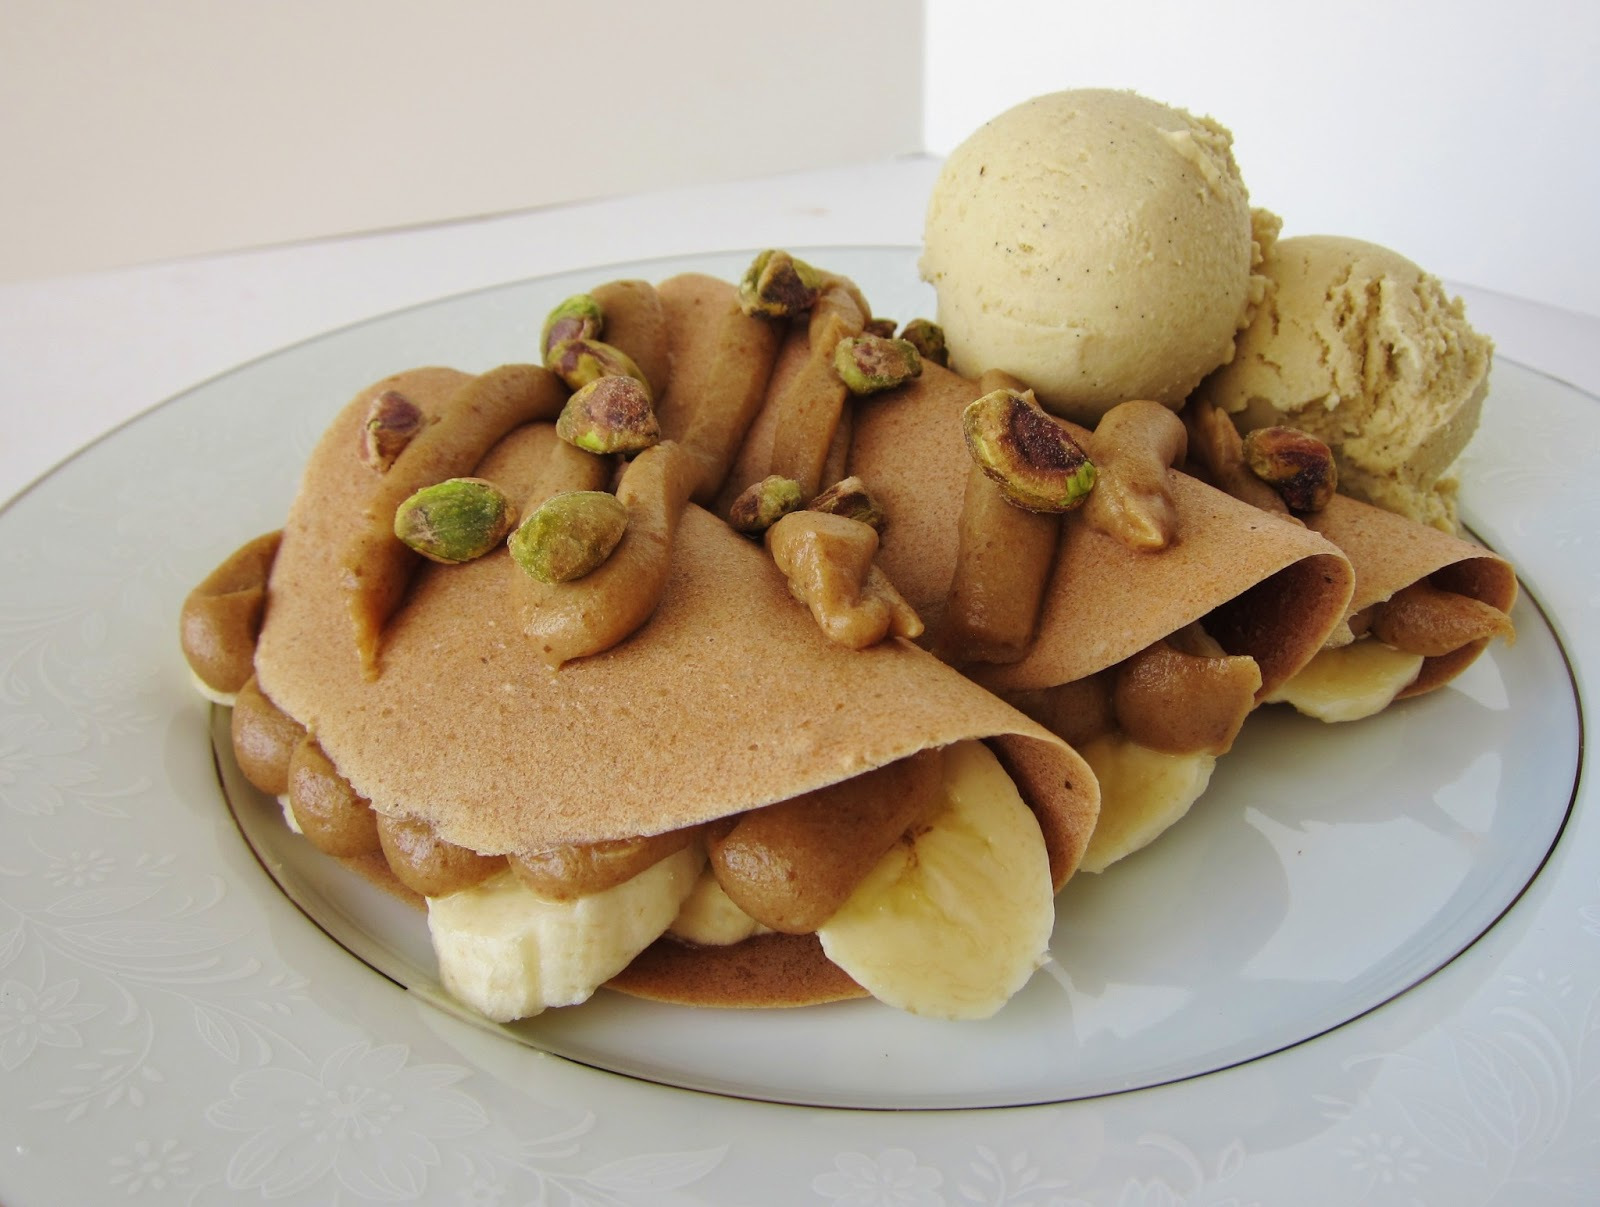 ... : Raw Banana Caramel Crepes with Pistachios and Banana Lime Ice Cream